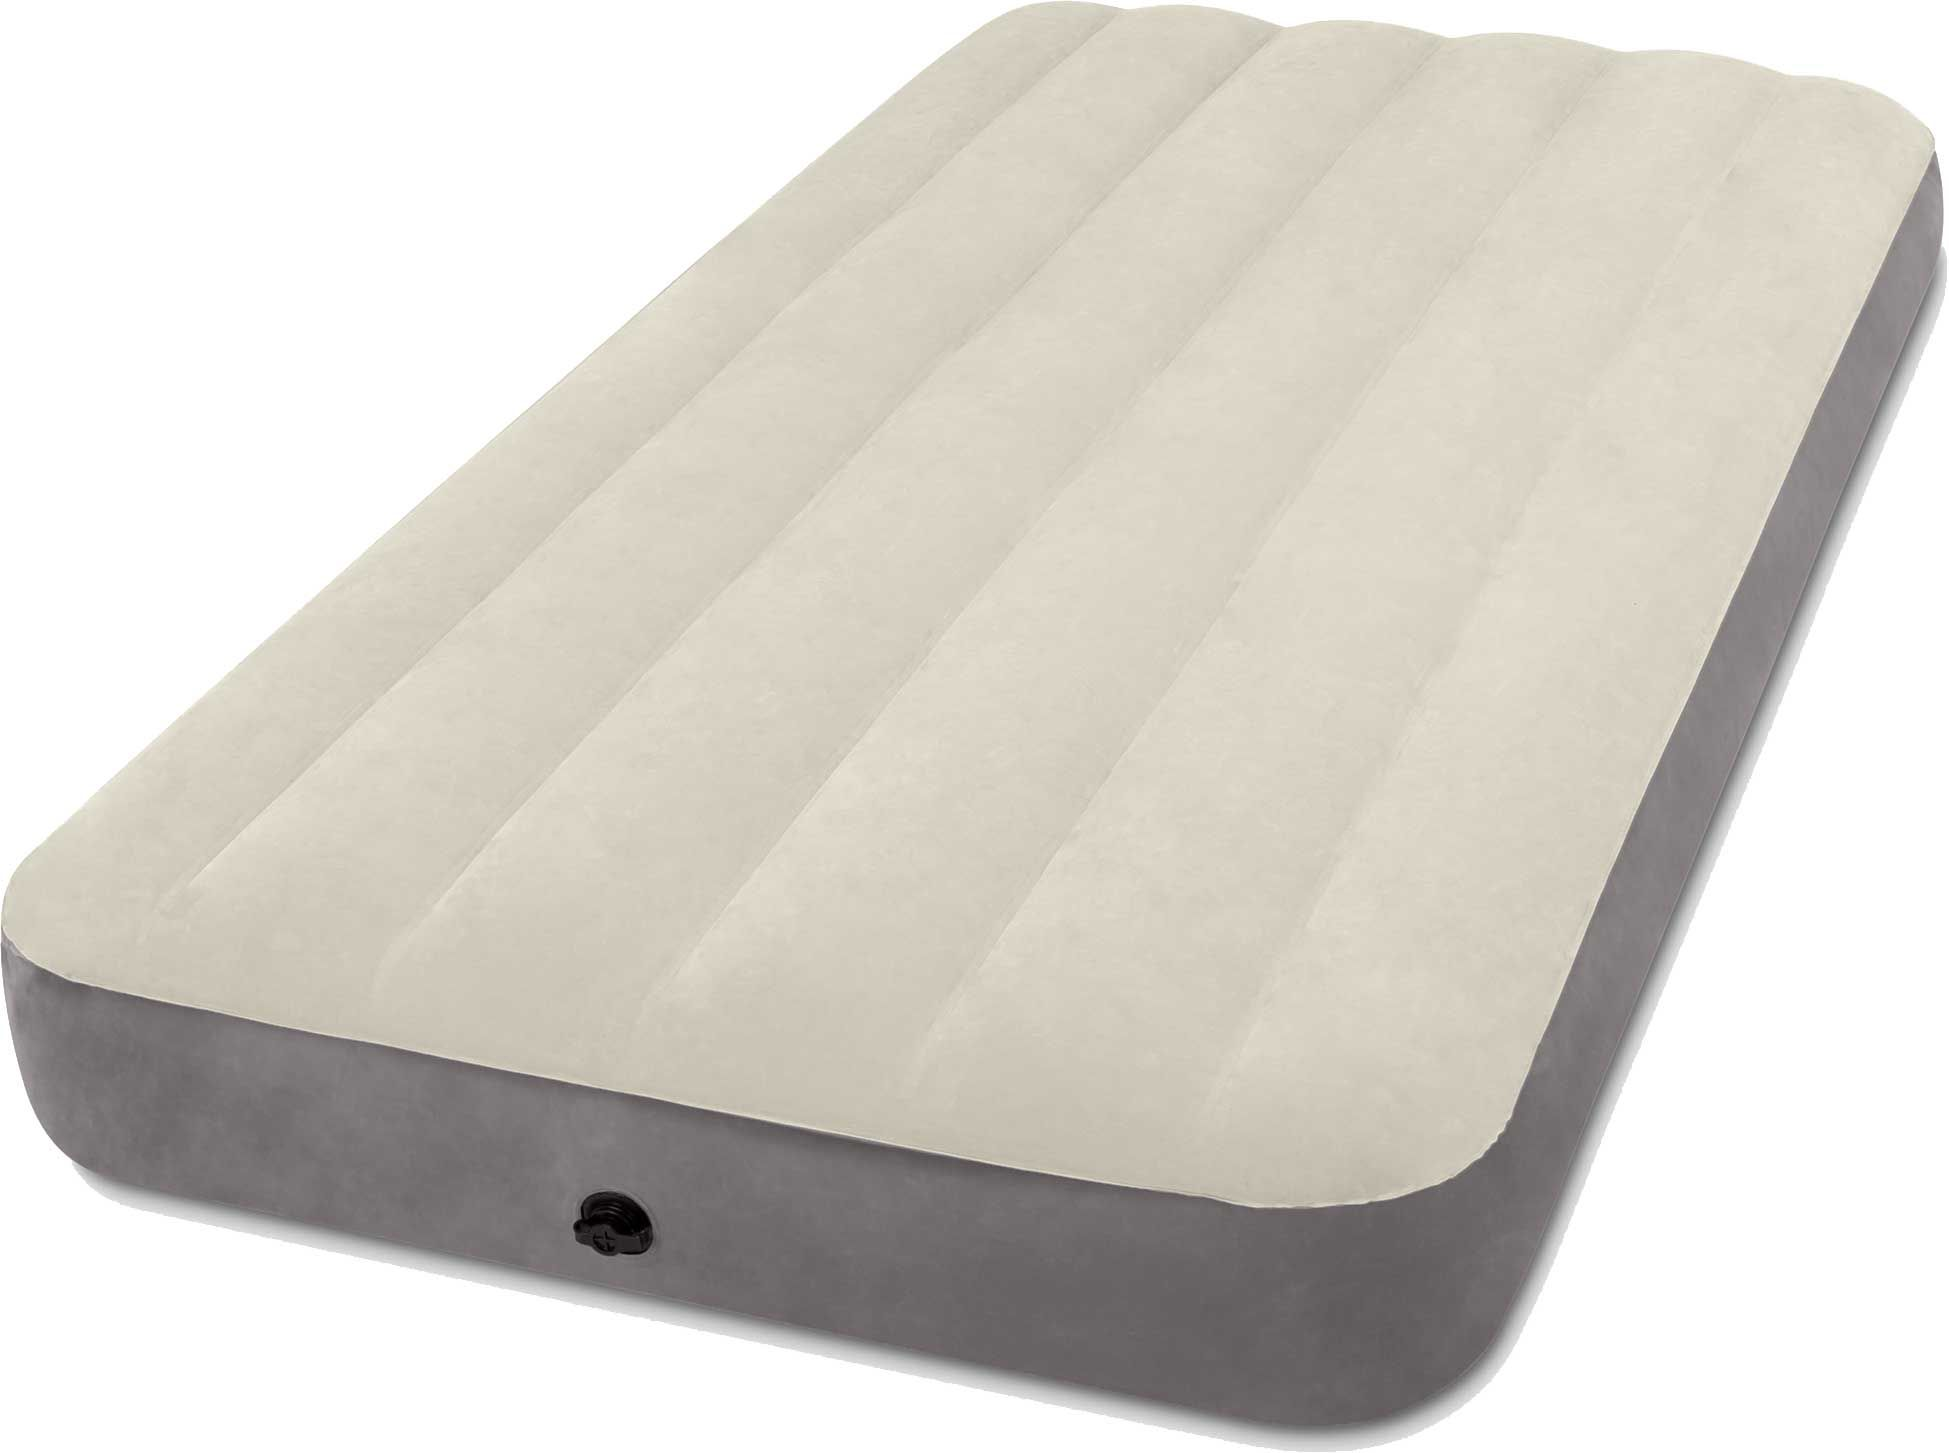 Intex Dura Beam Twin Air Mattress